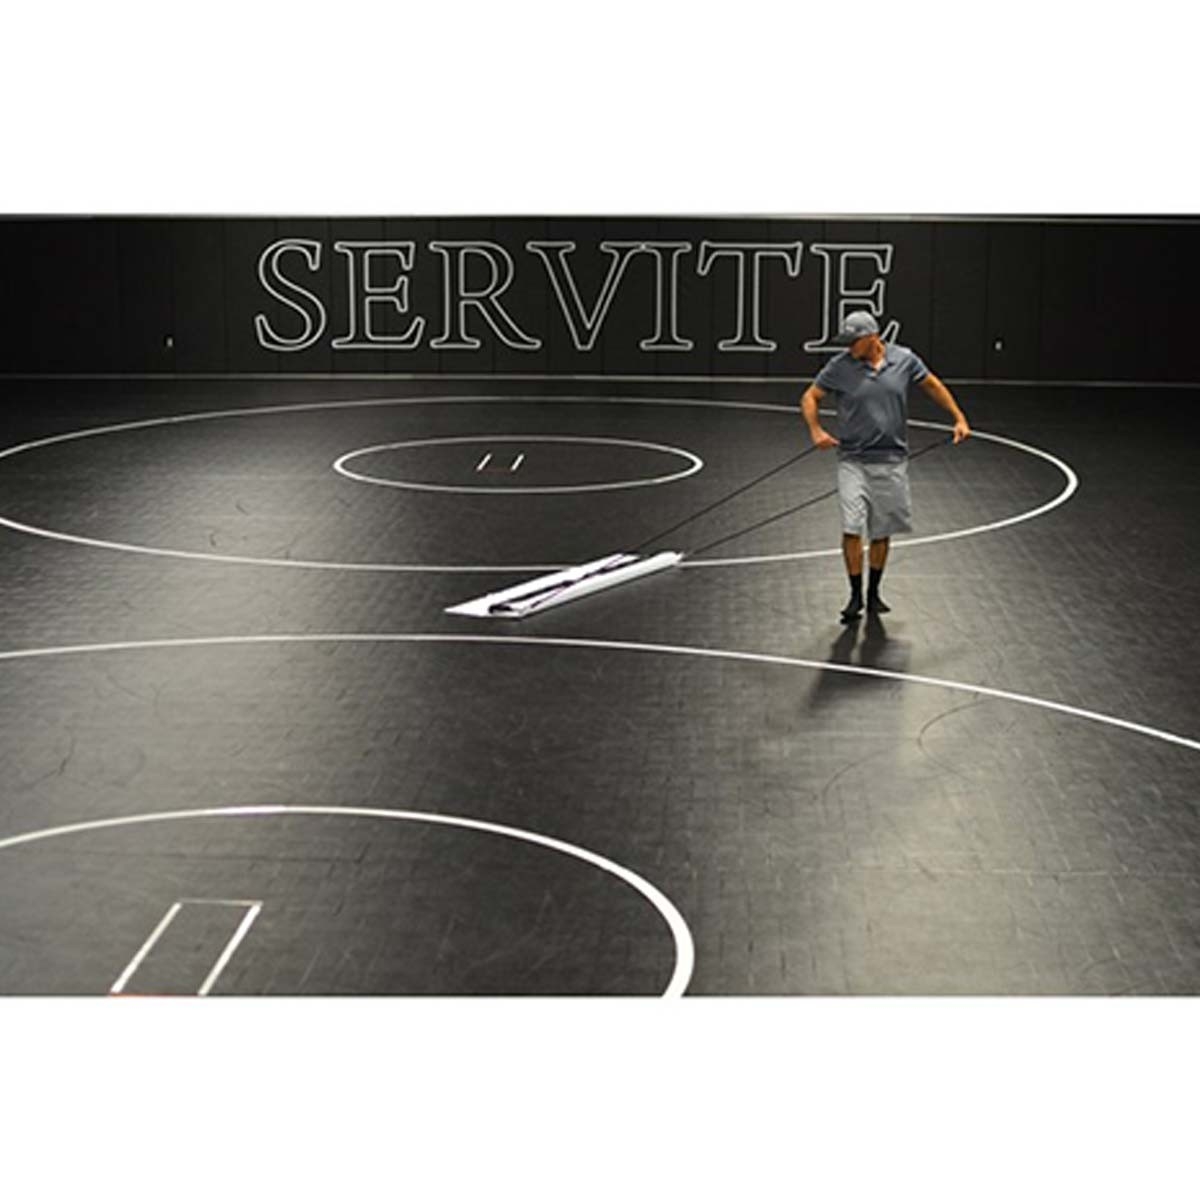 Court Clean Wrestling Mat Cleaner Package A92 121